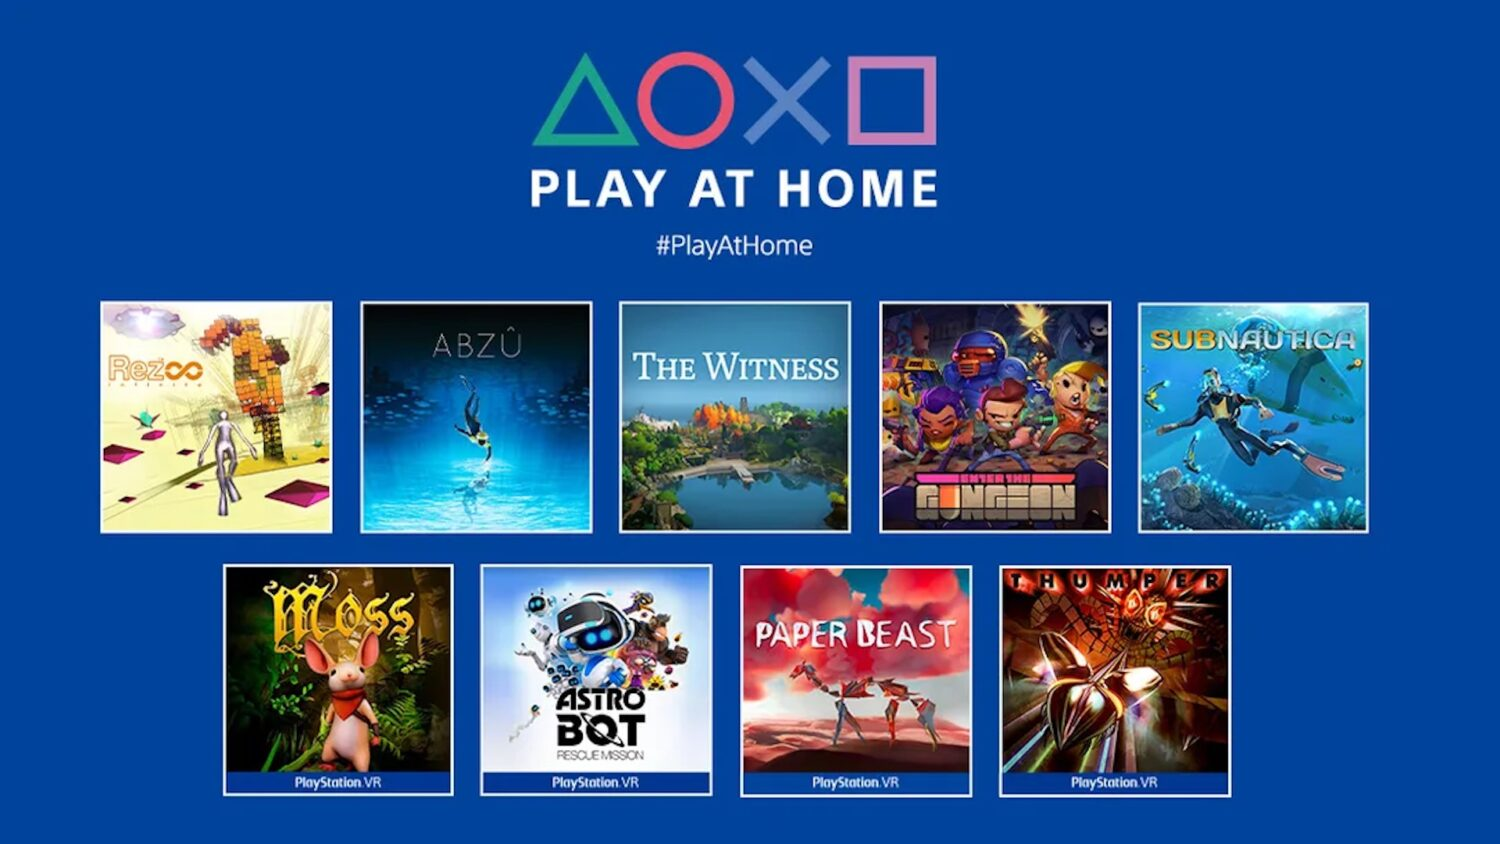 neuf-jeux-video-gratuits-ps5-ps4-sony